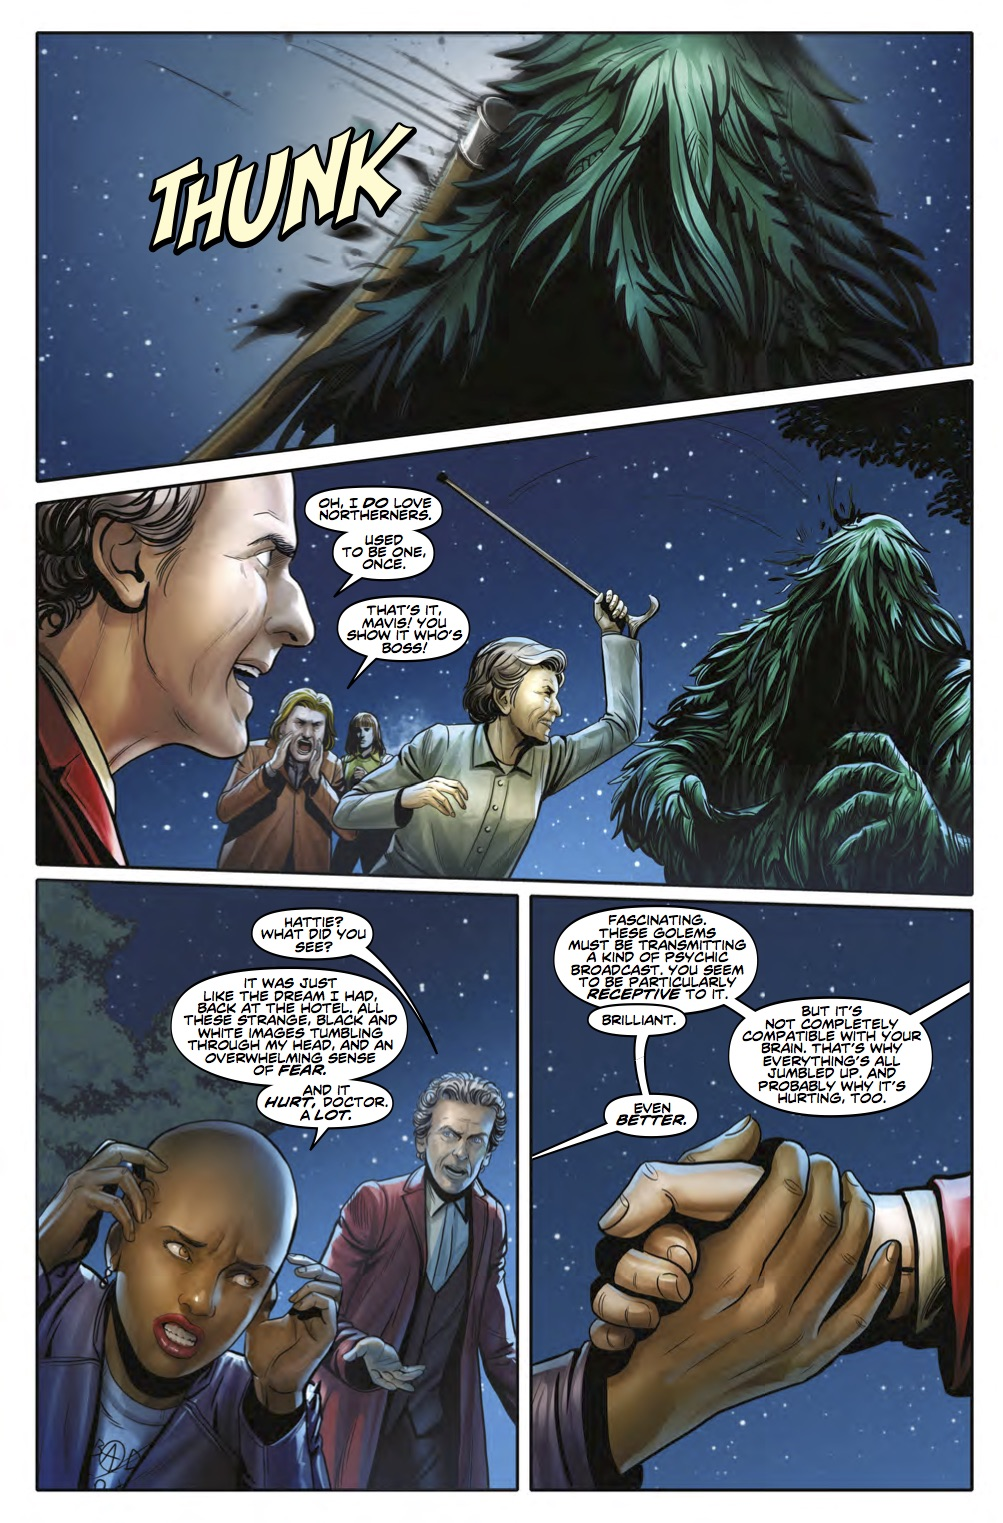 Twelfth Doctor Year Three #3 _Preview 2 (Credit: Titan)